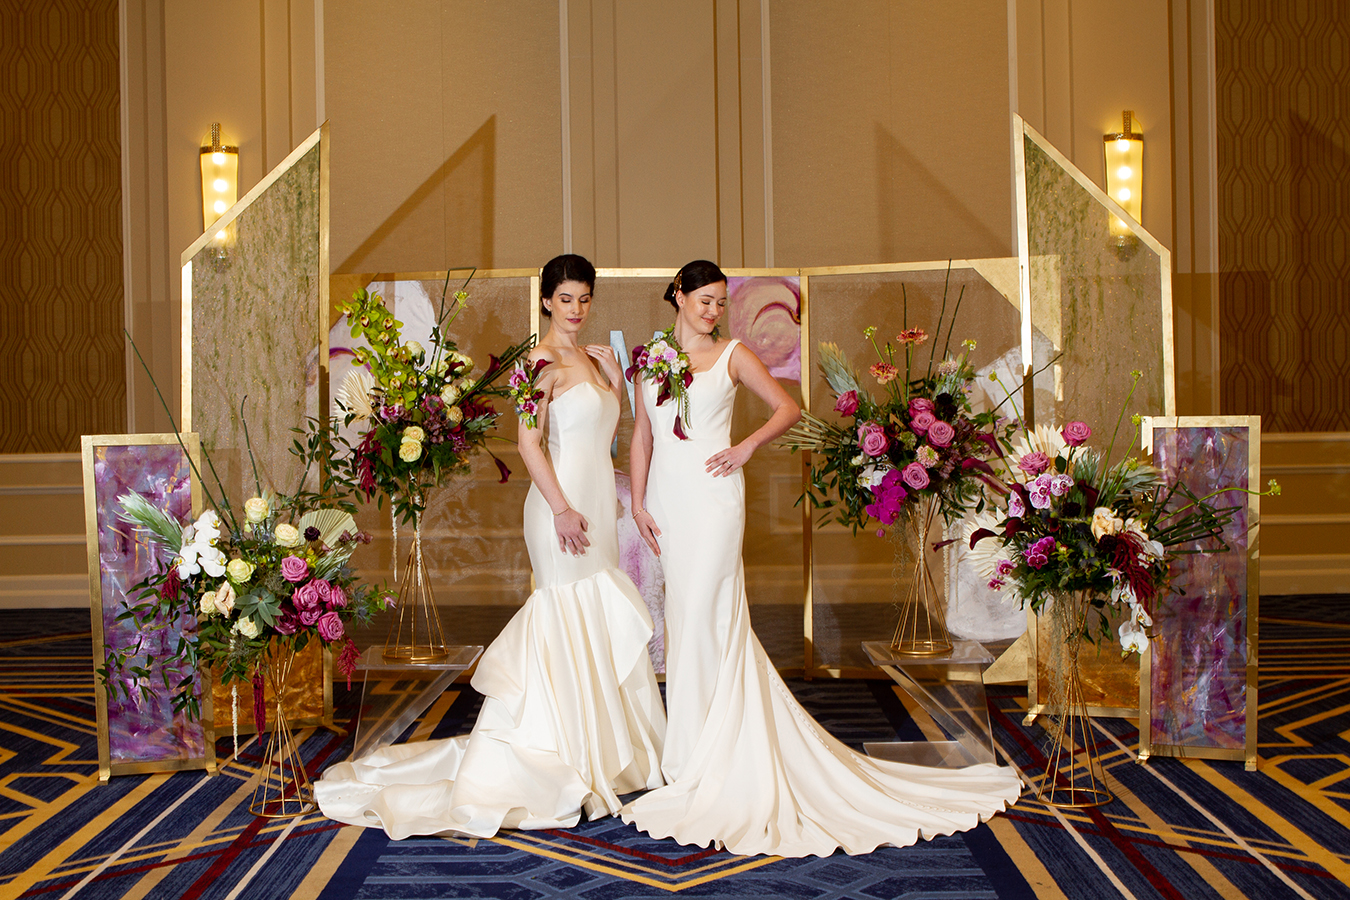 "Julie and Kaylei pose in front of a series of hand-painted screen backdrops amid lush florals from Mitch's Flowers. Both women wear elegant floral pieces, alternatives to traditional bouquets, designed by Mitch's Flowers. A custom-made monogram from Design A Latte Monograms is suspended from the center backdrop panel. Julie's classic strapless Mikado silk gown is from Pearl's Place with a diamond bangle, pearl stud earrings, contour baguette band with pear-shape diamond solitaire ring and an Art Deco studded band from Brilliance in Diamonds. Kaylei is wearing a simple, modern fit-and-flare gown from MaeMe The Bridal Boutique with a diamond bangle bracelet, ""Marigold"" ring and radiant cut diamond studs from Brilliance in Diamonds."